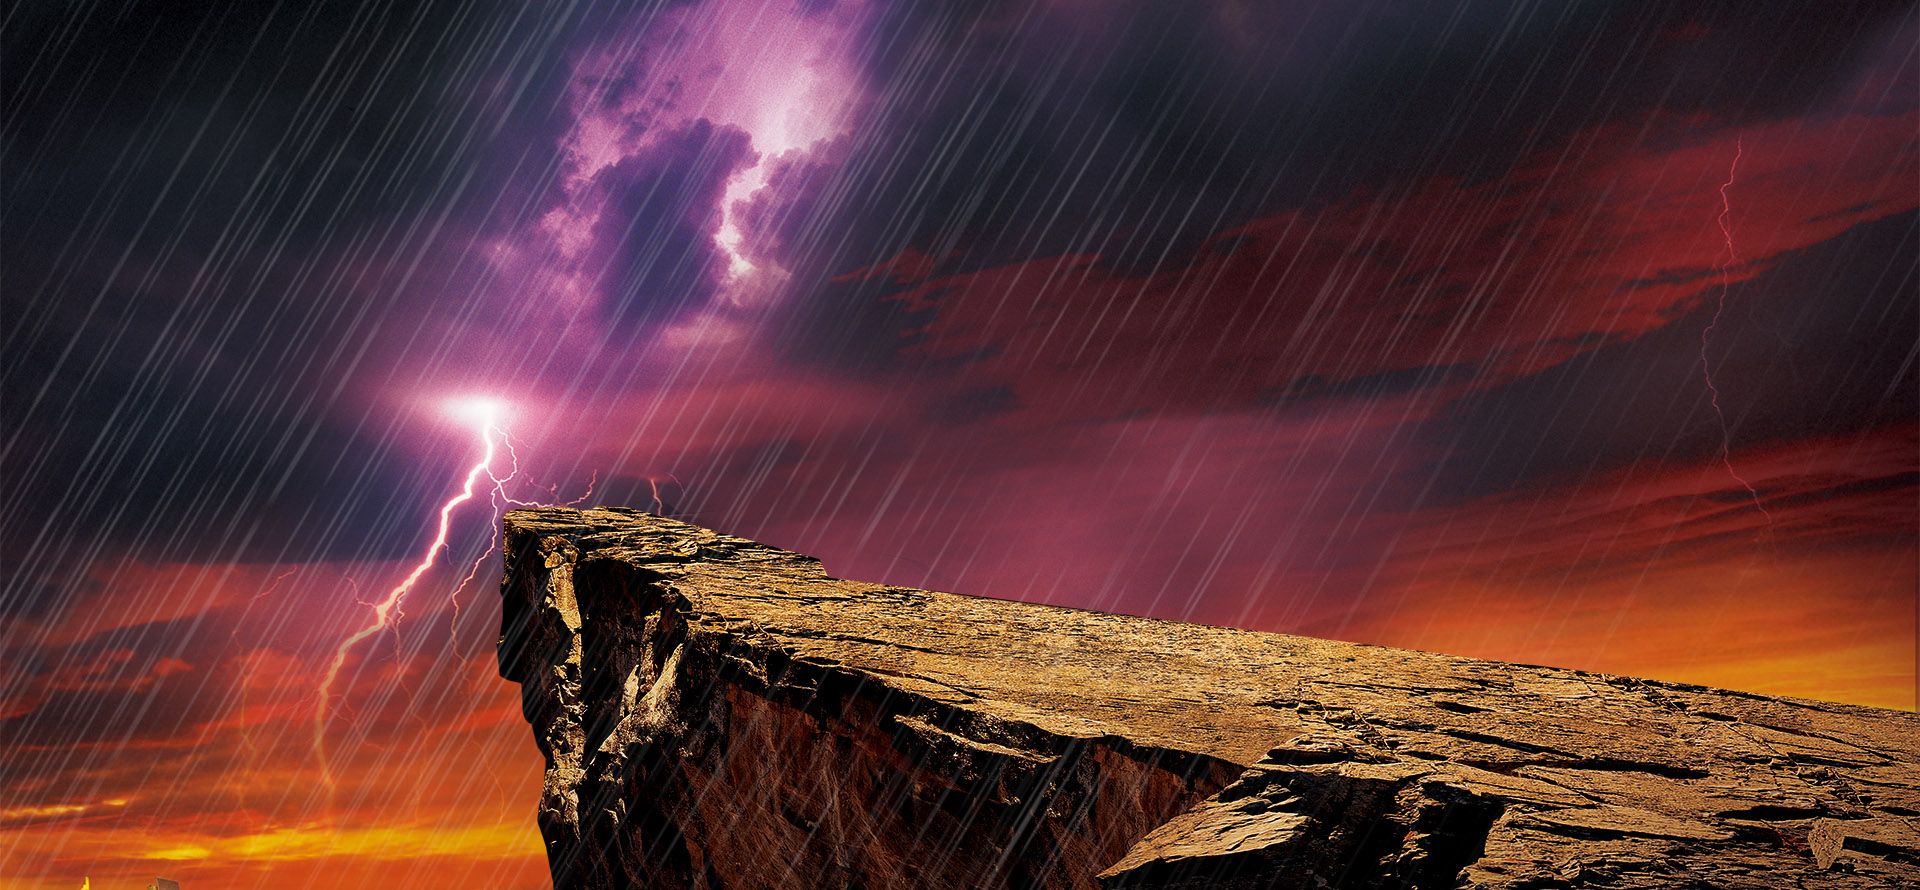 rainy night background  rain  drizzle  cliff background image for free download